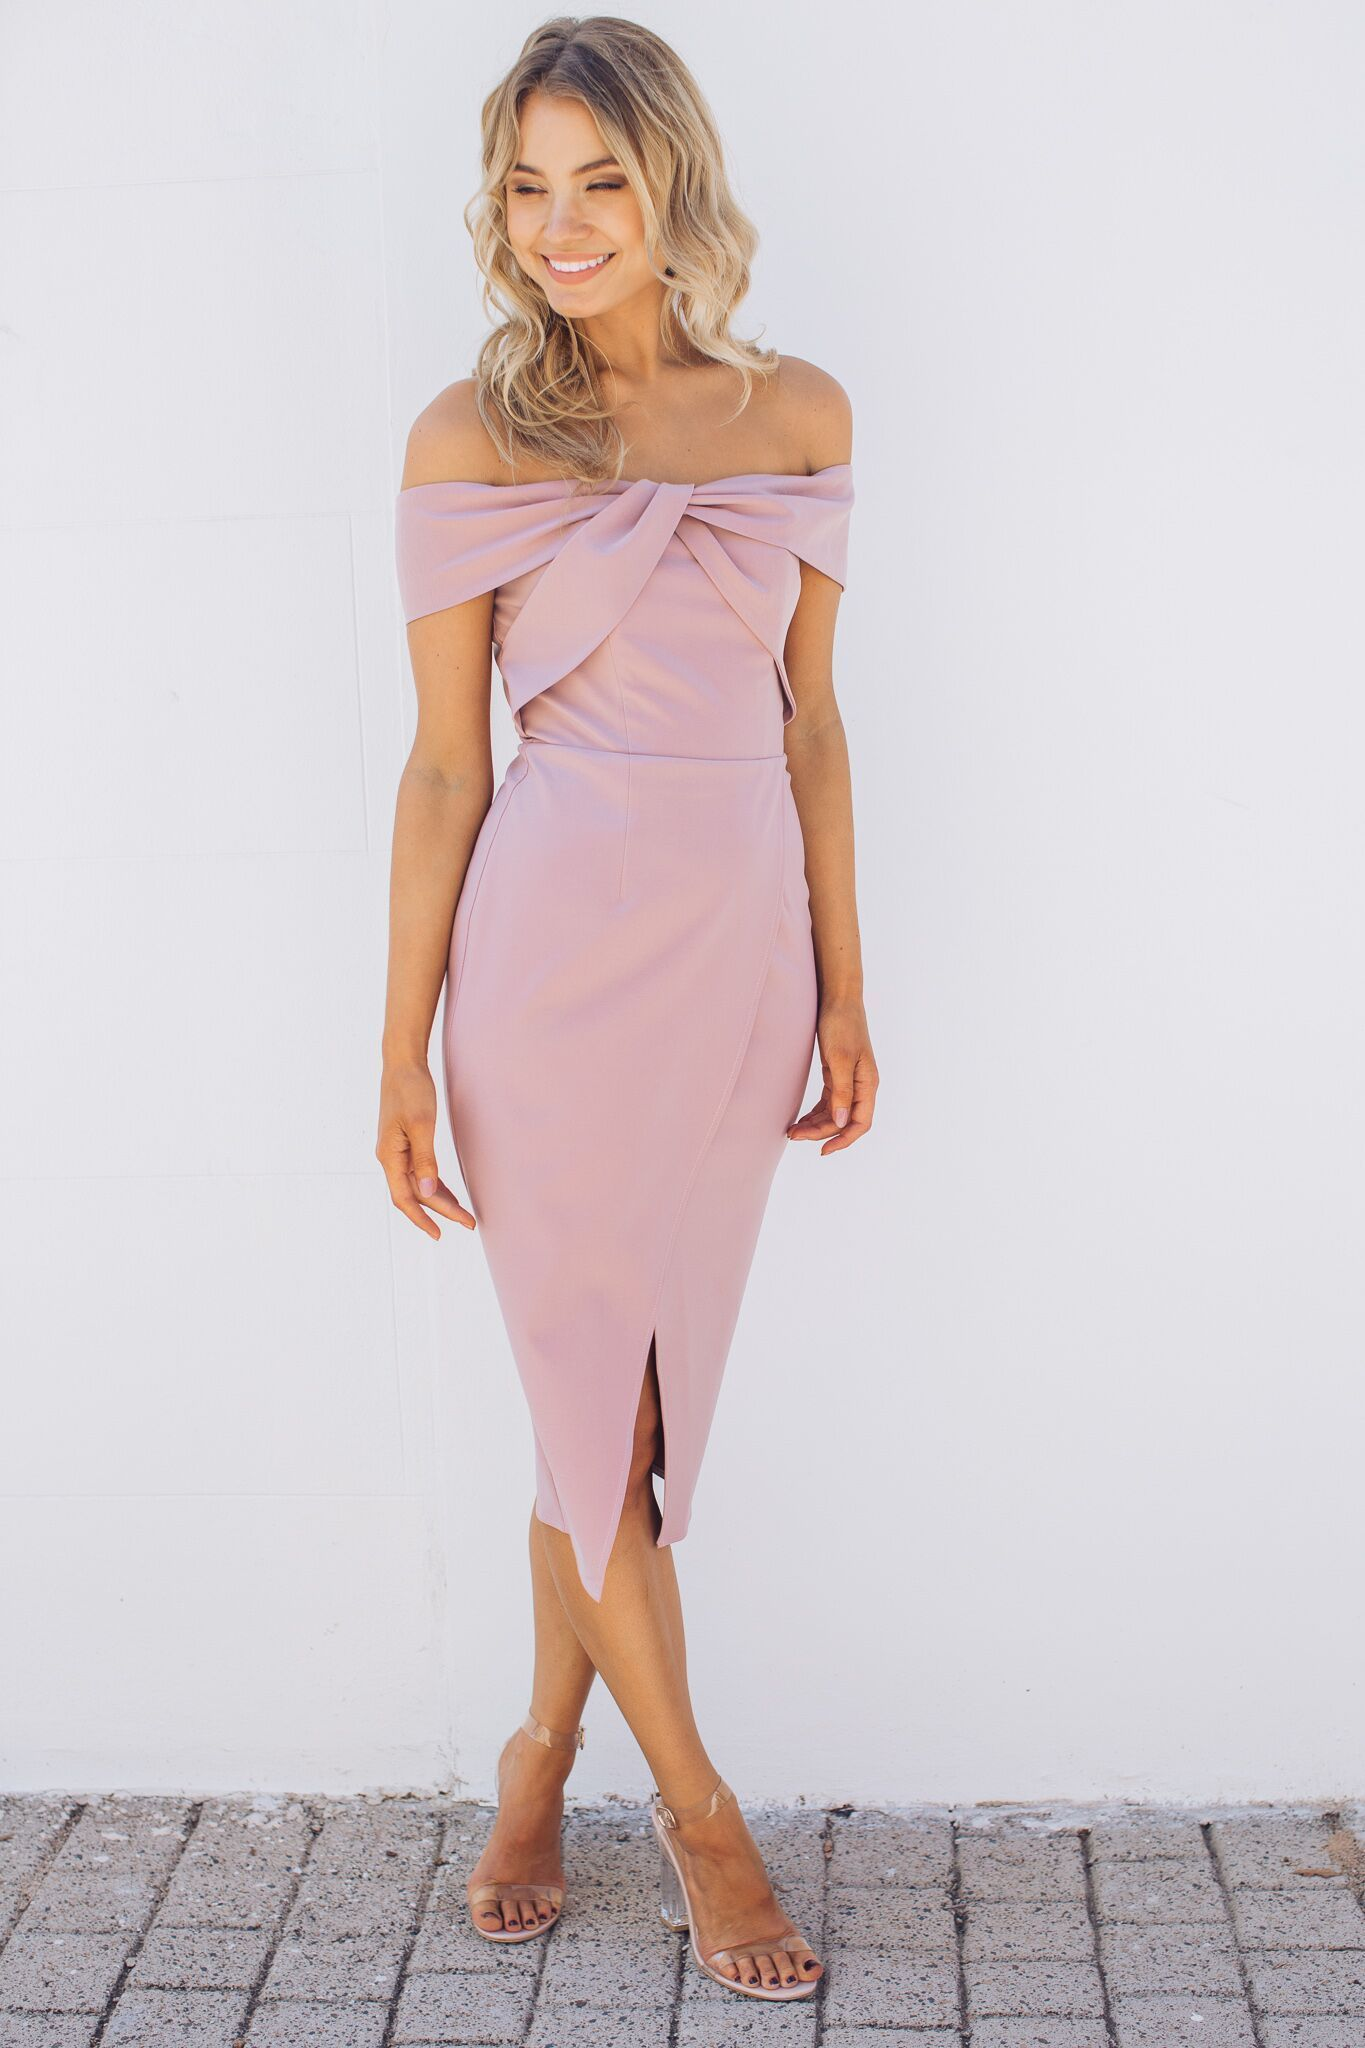 Seaside Dress Blush 109 95 Esther Com Au Fashion Outfitoftheday Outfit Esther Dr Dresses To Wear To A Wedding Wedding Attire Guest Fall Wedding Attire [ 2048 x 1365 Pixel ]